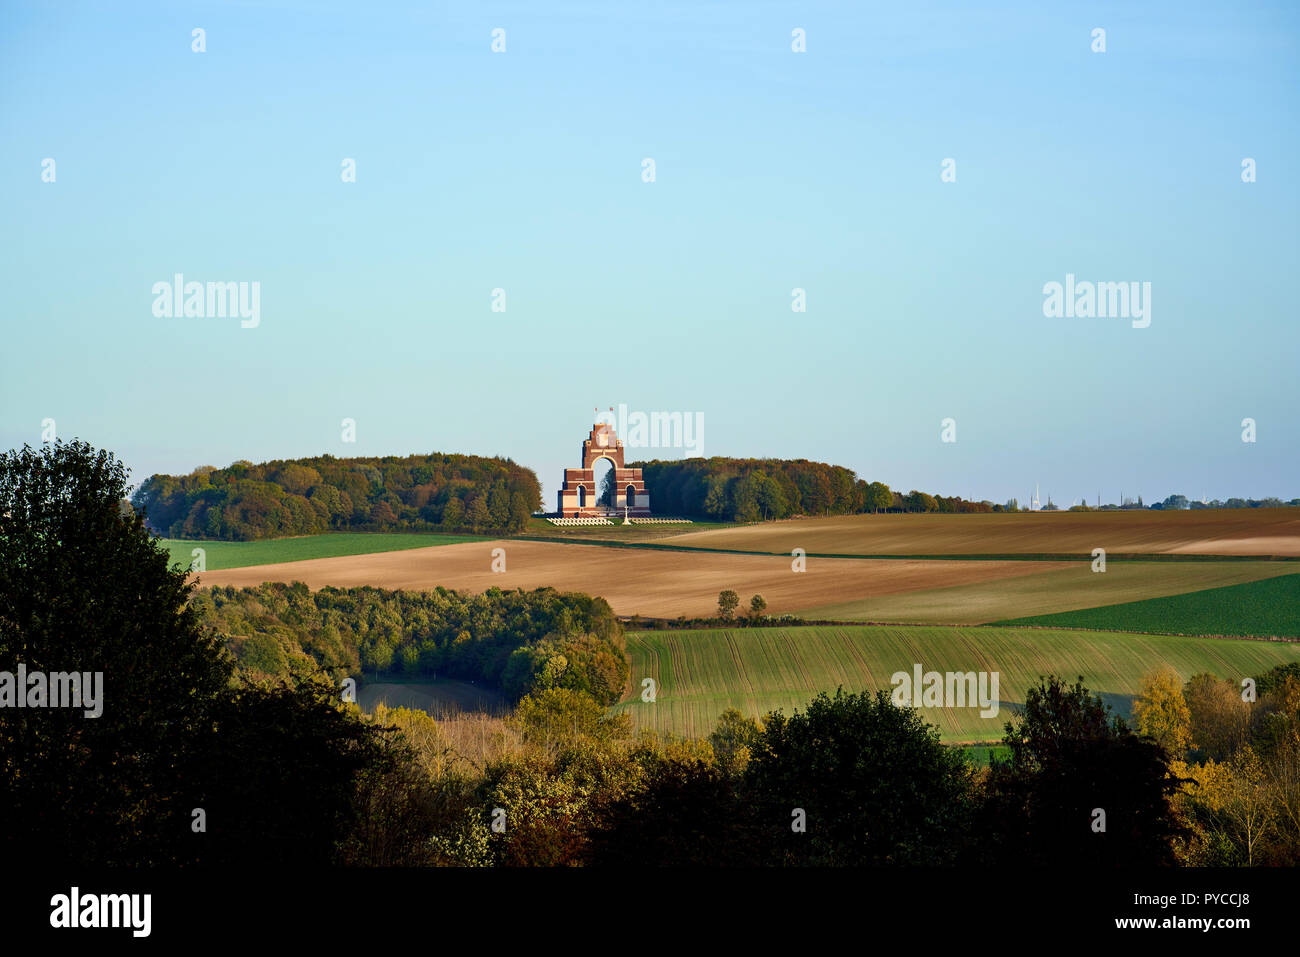 Memorial to the Missing at Thiepval in France - Stock Image